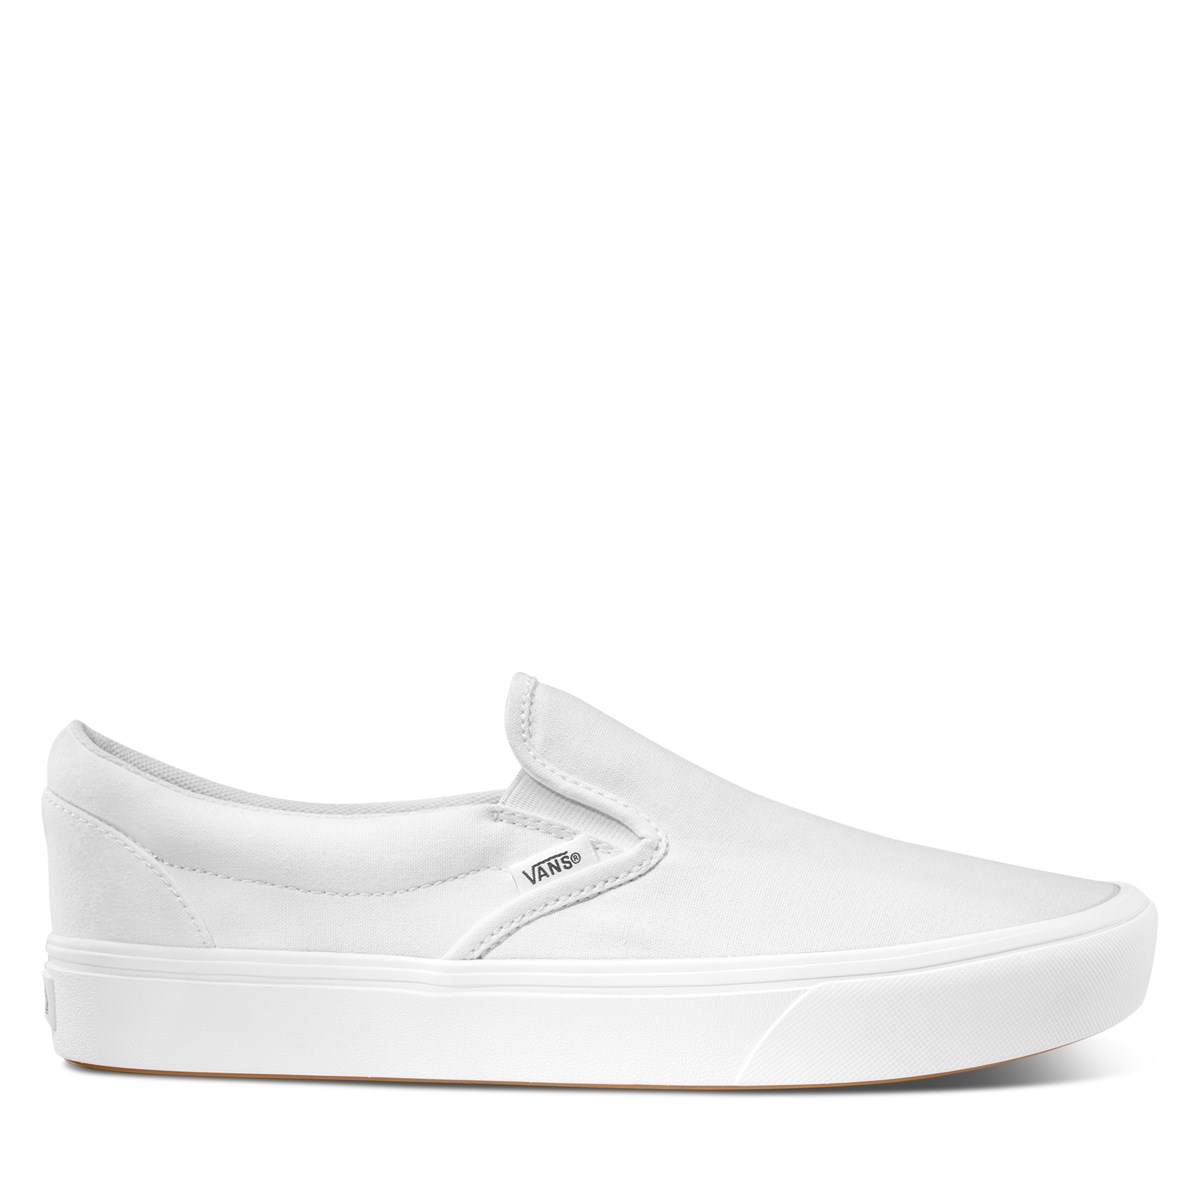 ComfyCush Classic Slip-Ons in White